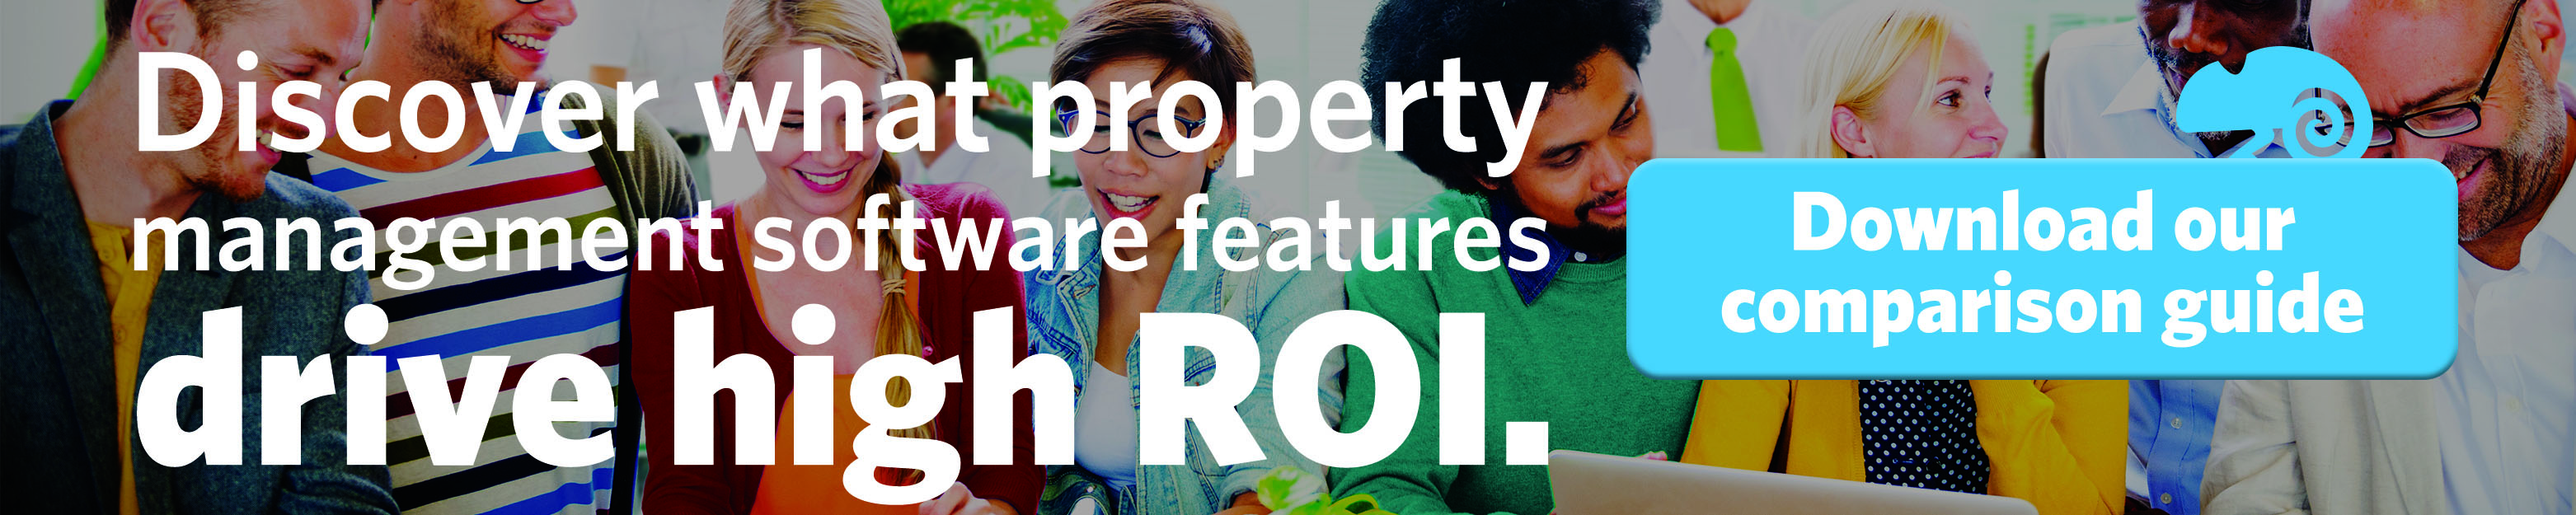 property-management-software-features-roi